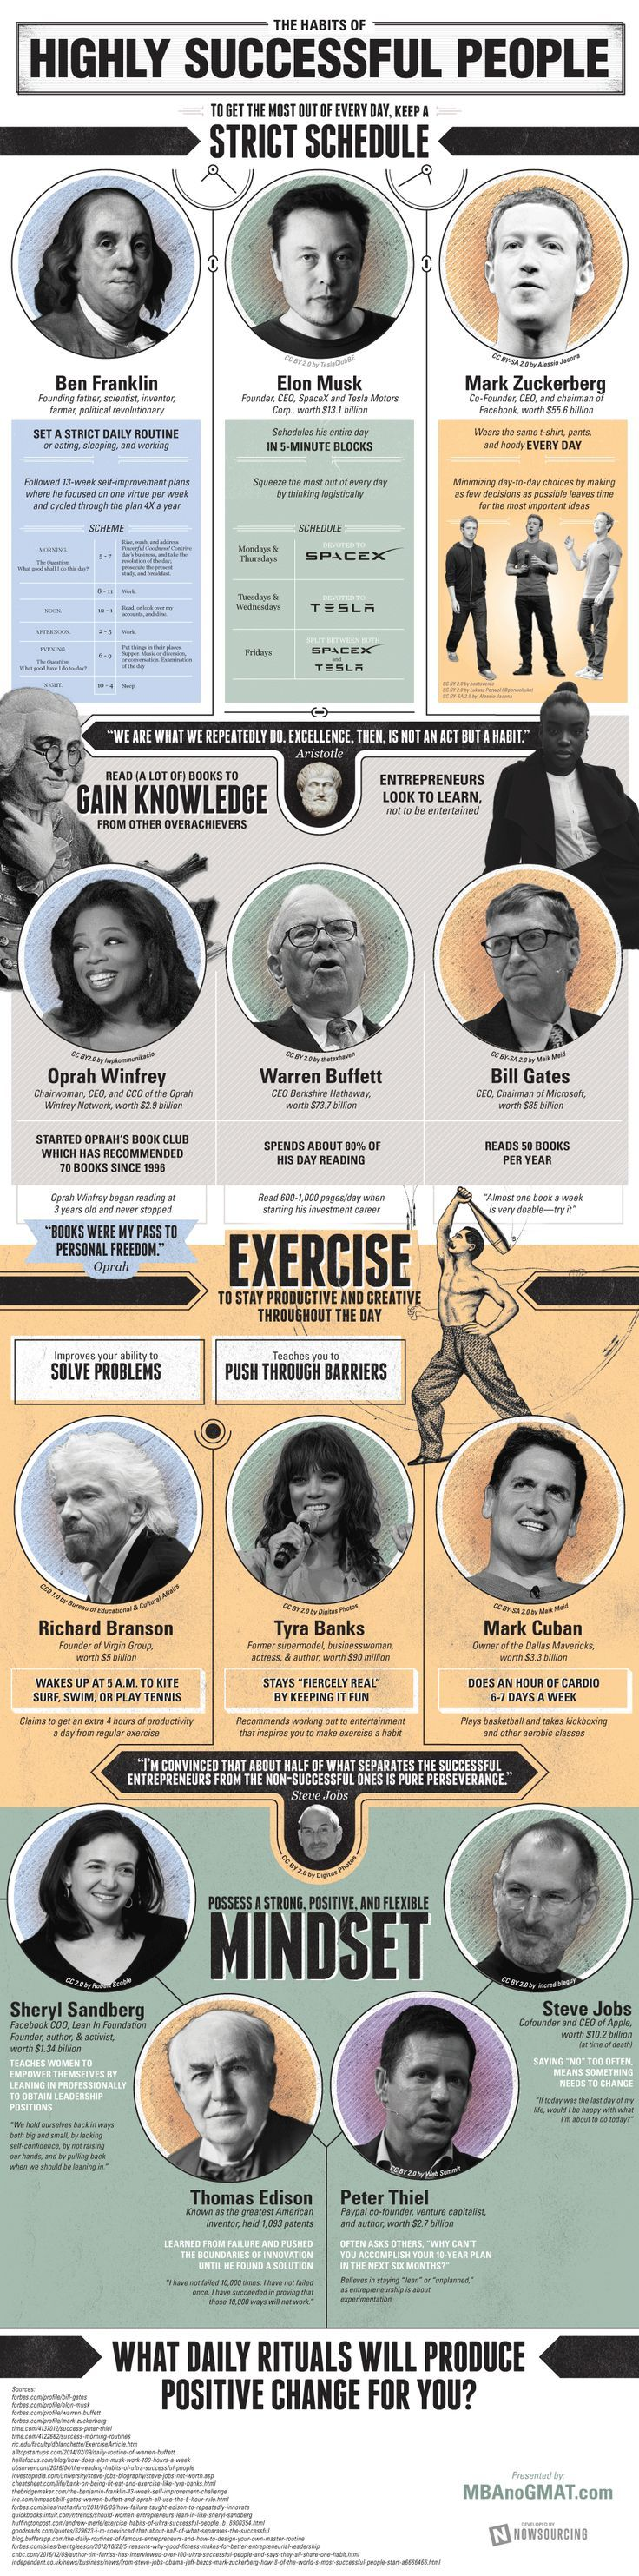 The Habits Of Highly Successful People #Infographic #SuccessfulStories